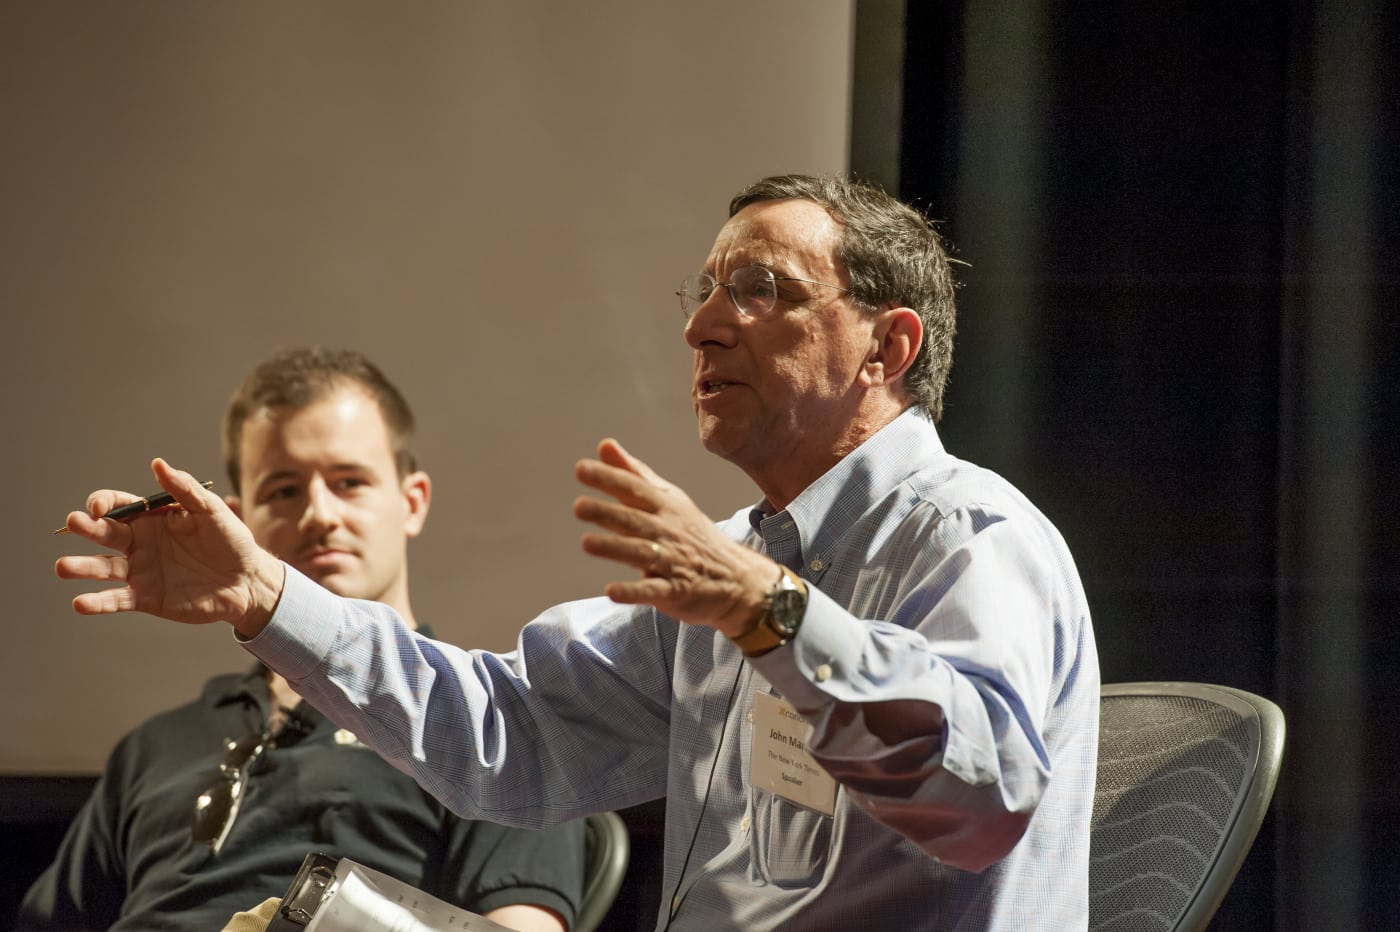 The New York Times' John Markoff